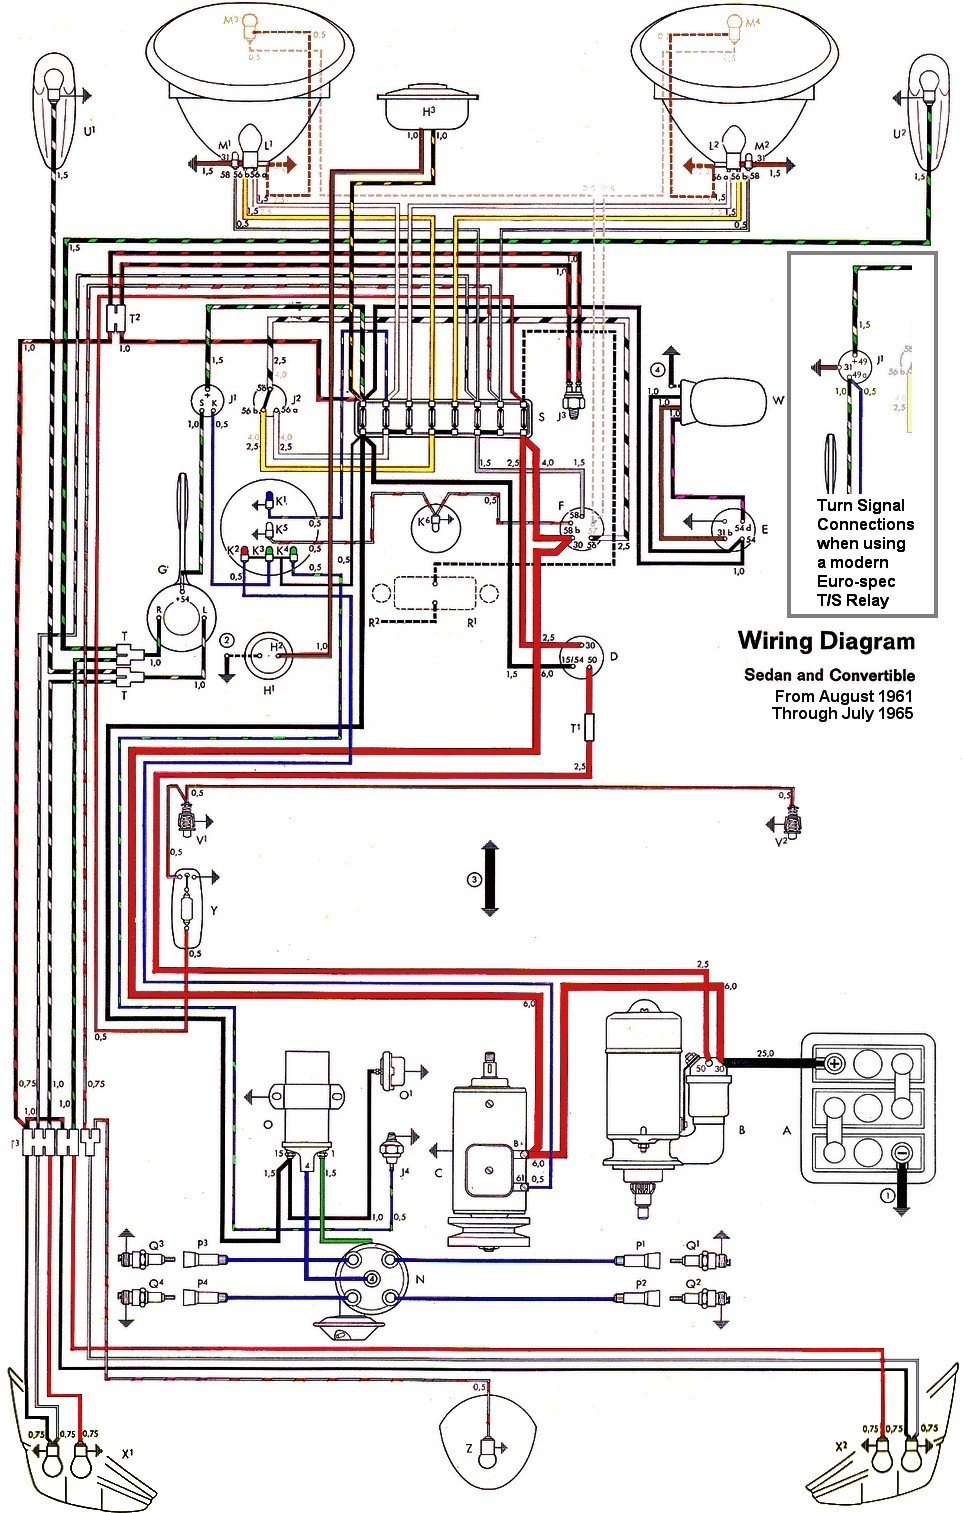 thesamba com type 1 wiring diagrams 1973 VW Wiring Diagram 1965 Vw Wiring Diagram #1